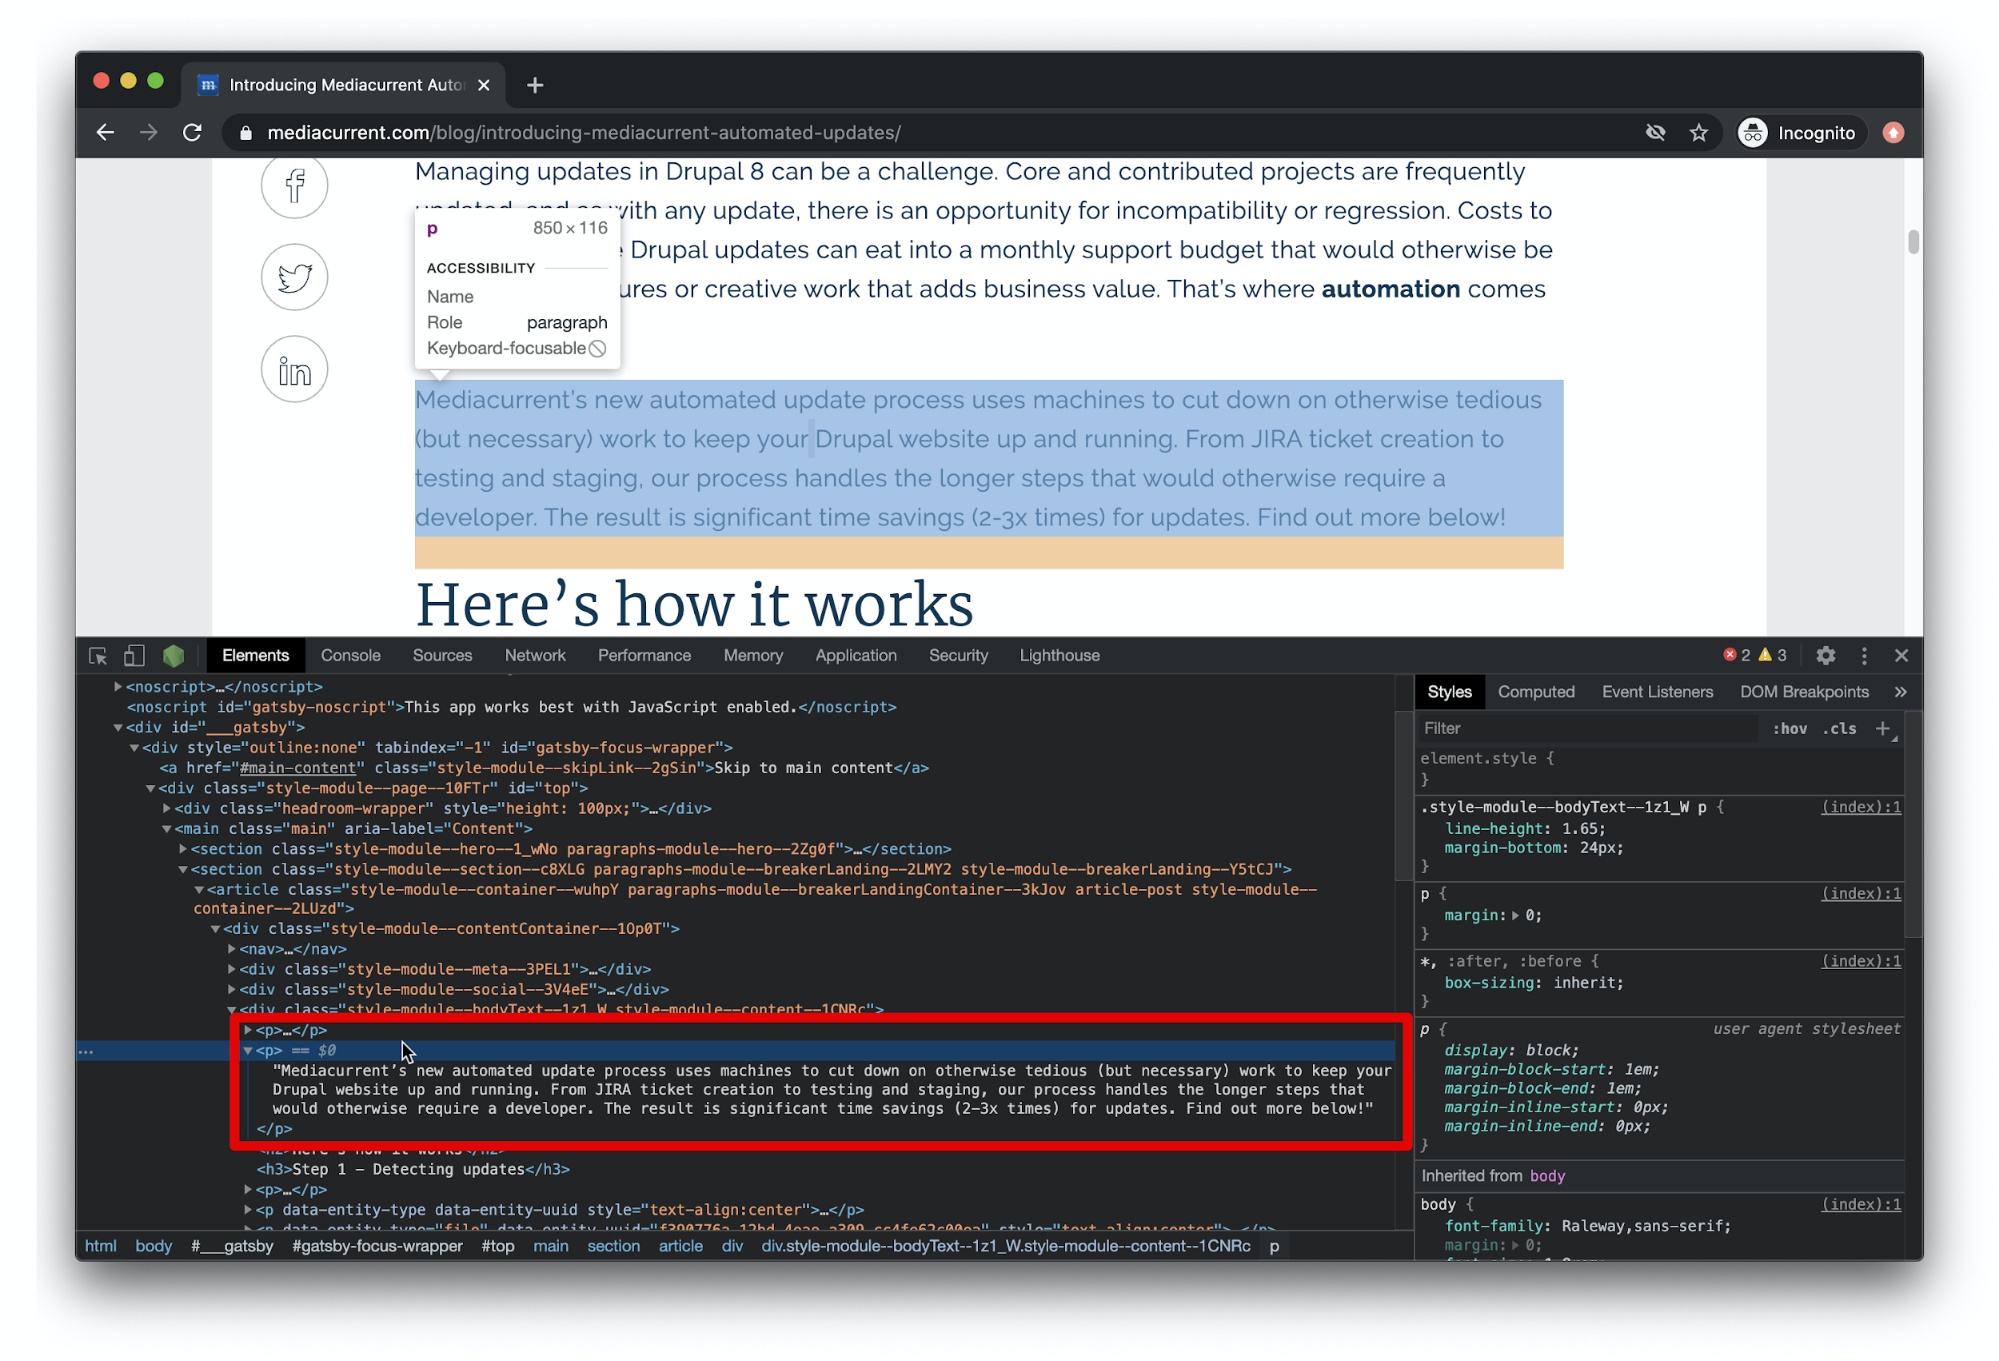 A screenshot of developer tools being used to highlight a paragraph element